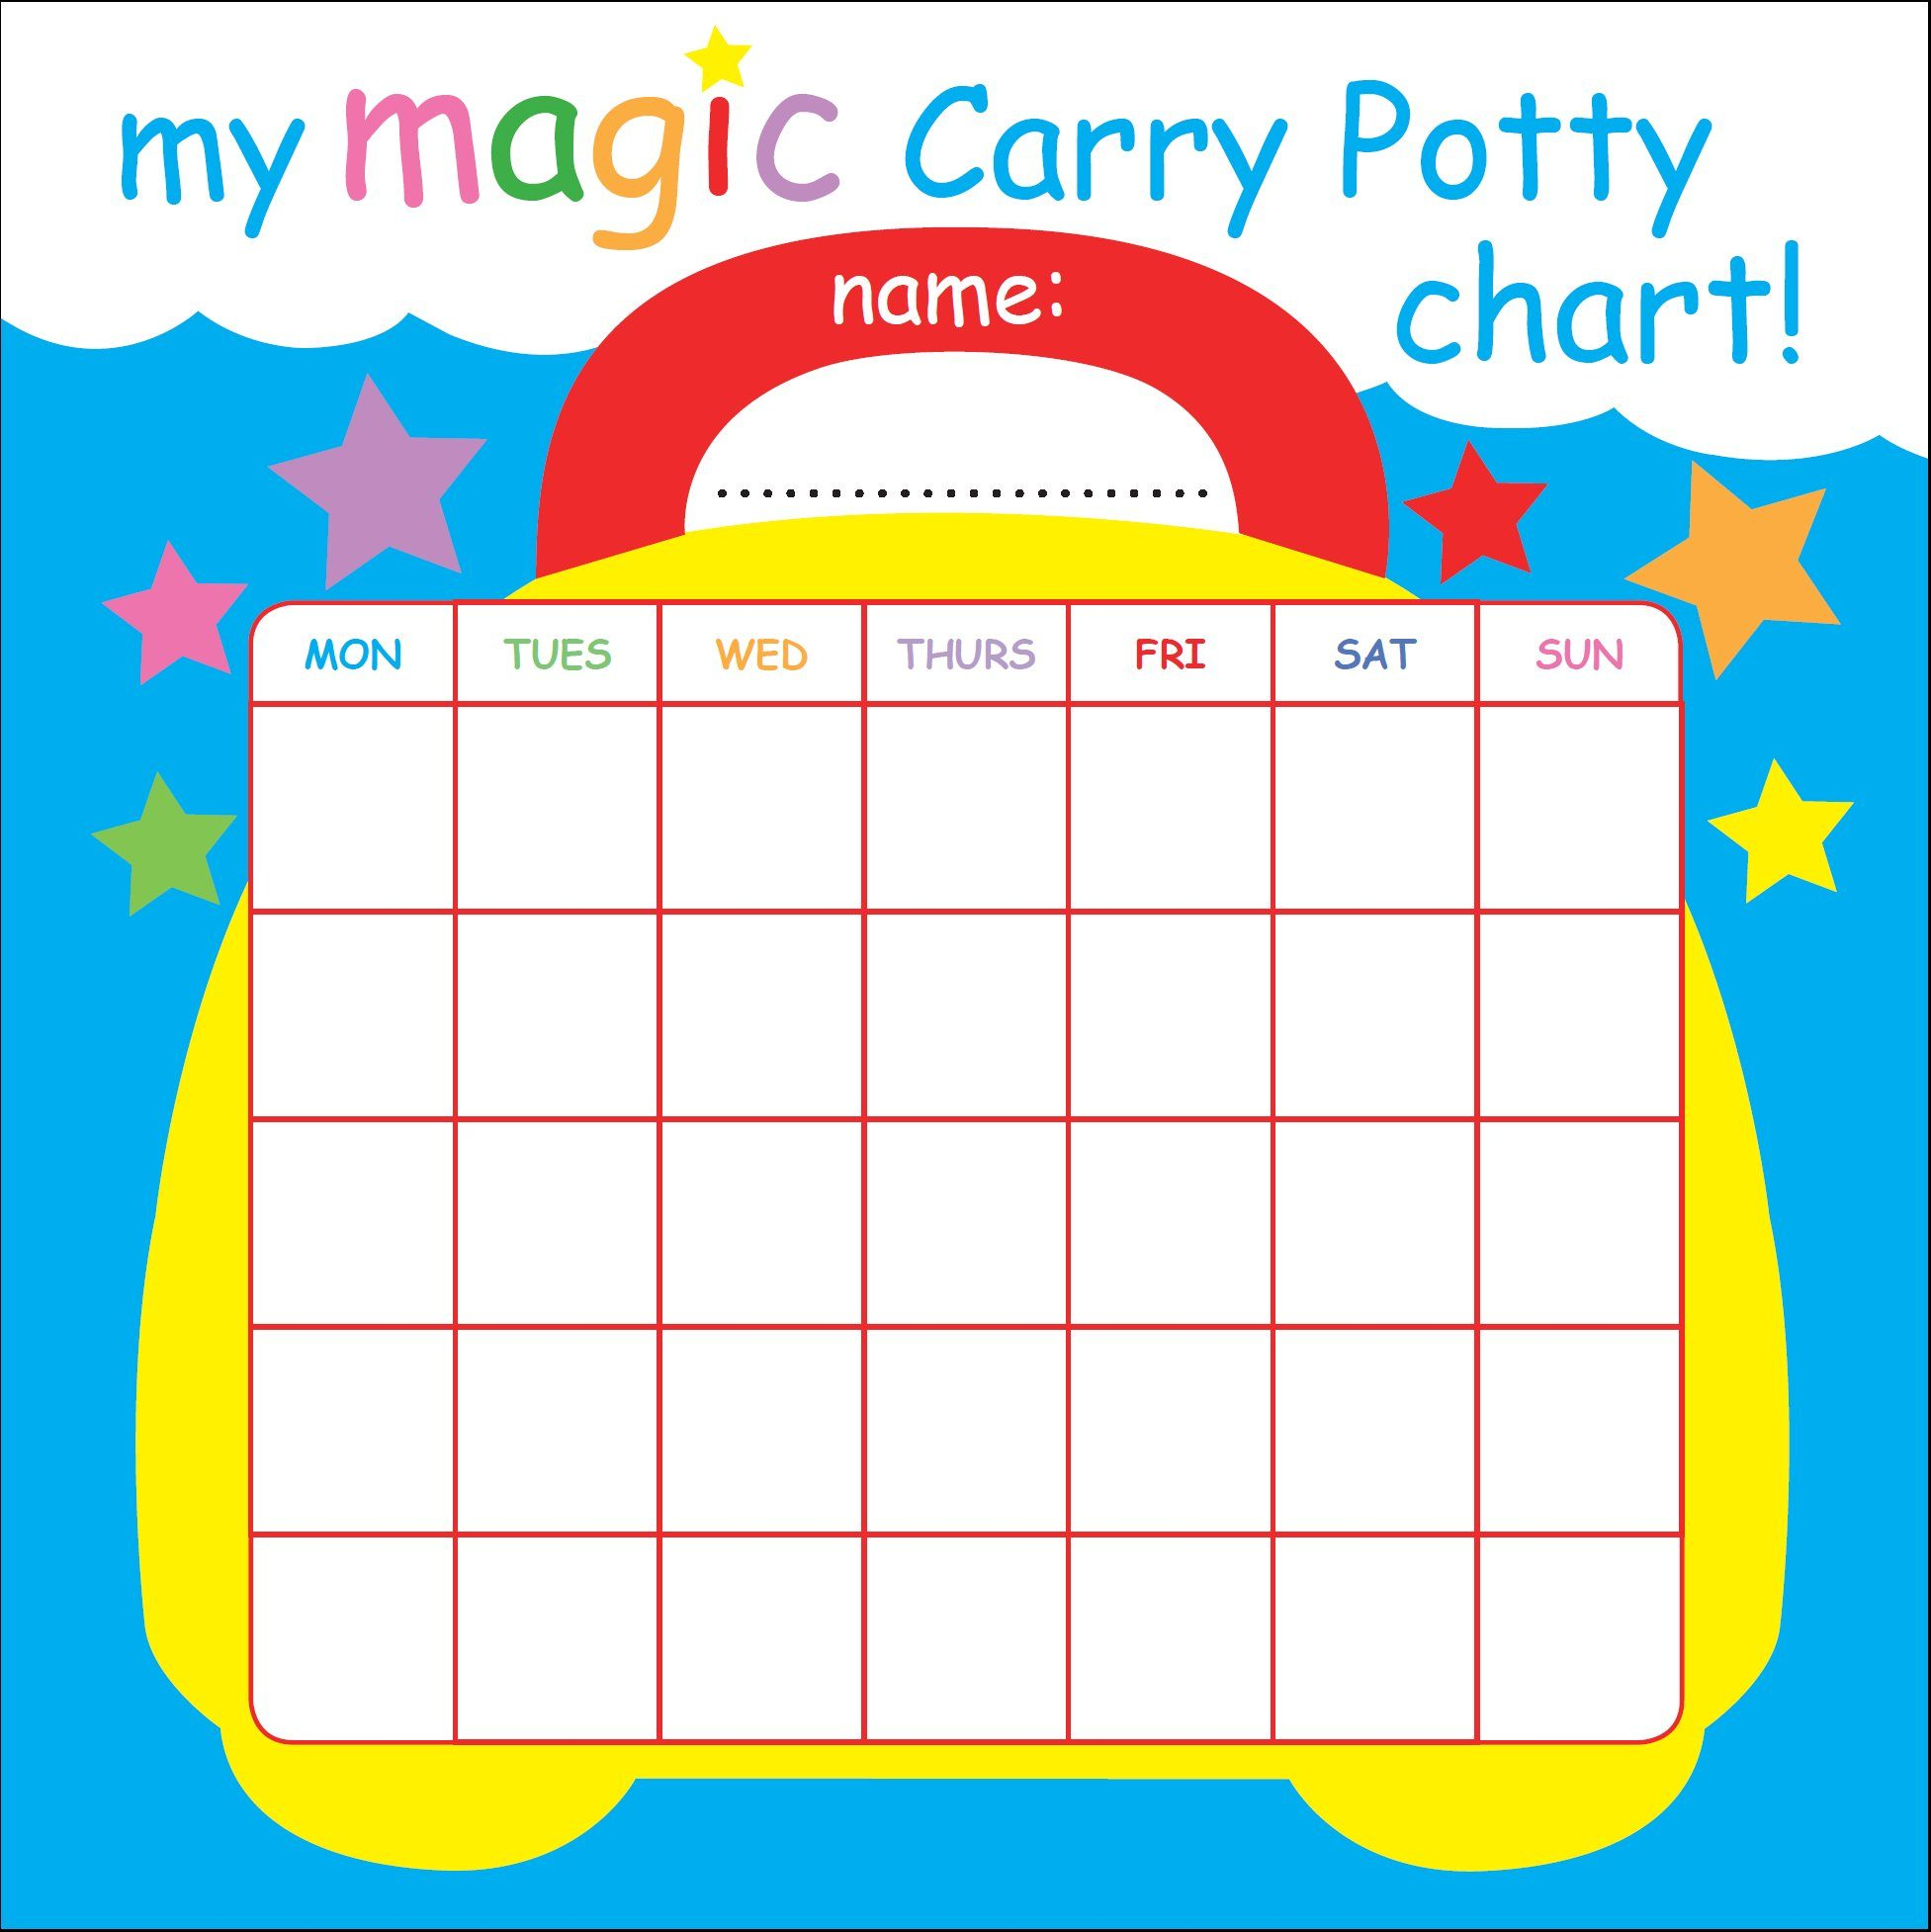 picture regarding Printable Potty Sticker Chart referred to as Absolutely free print-out benefit chart for your potty doing exercises little one